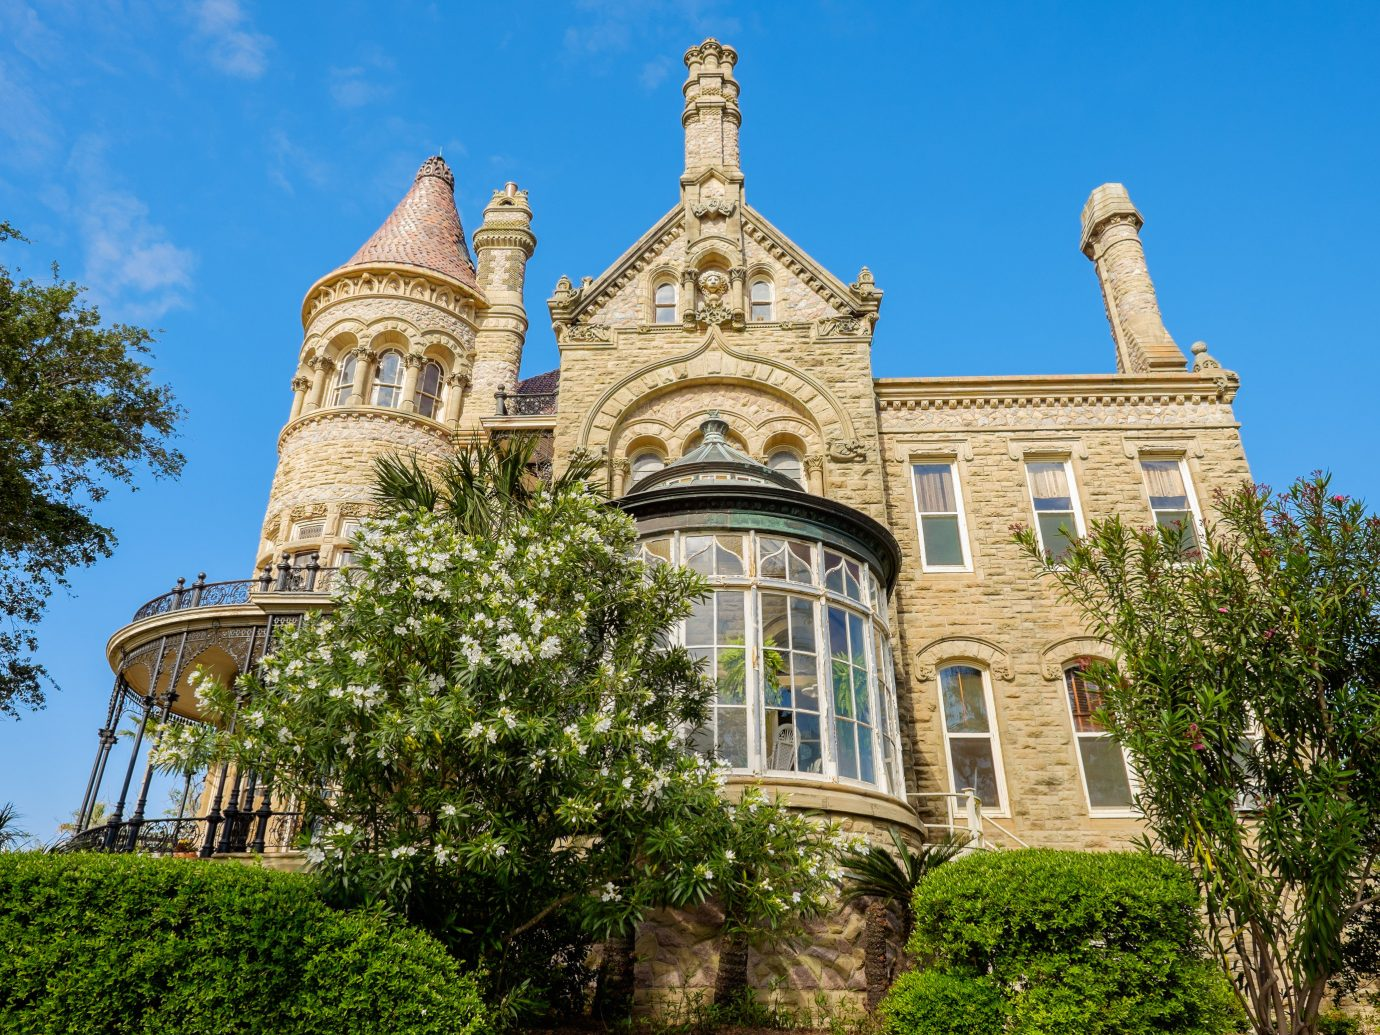 Trip Ideas tree outdoor sky building historic site landmark estate Architecture stately home place of worship château palace monastery facade mansion Church tall cathedral old government building stone surrounded